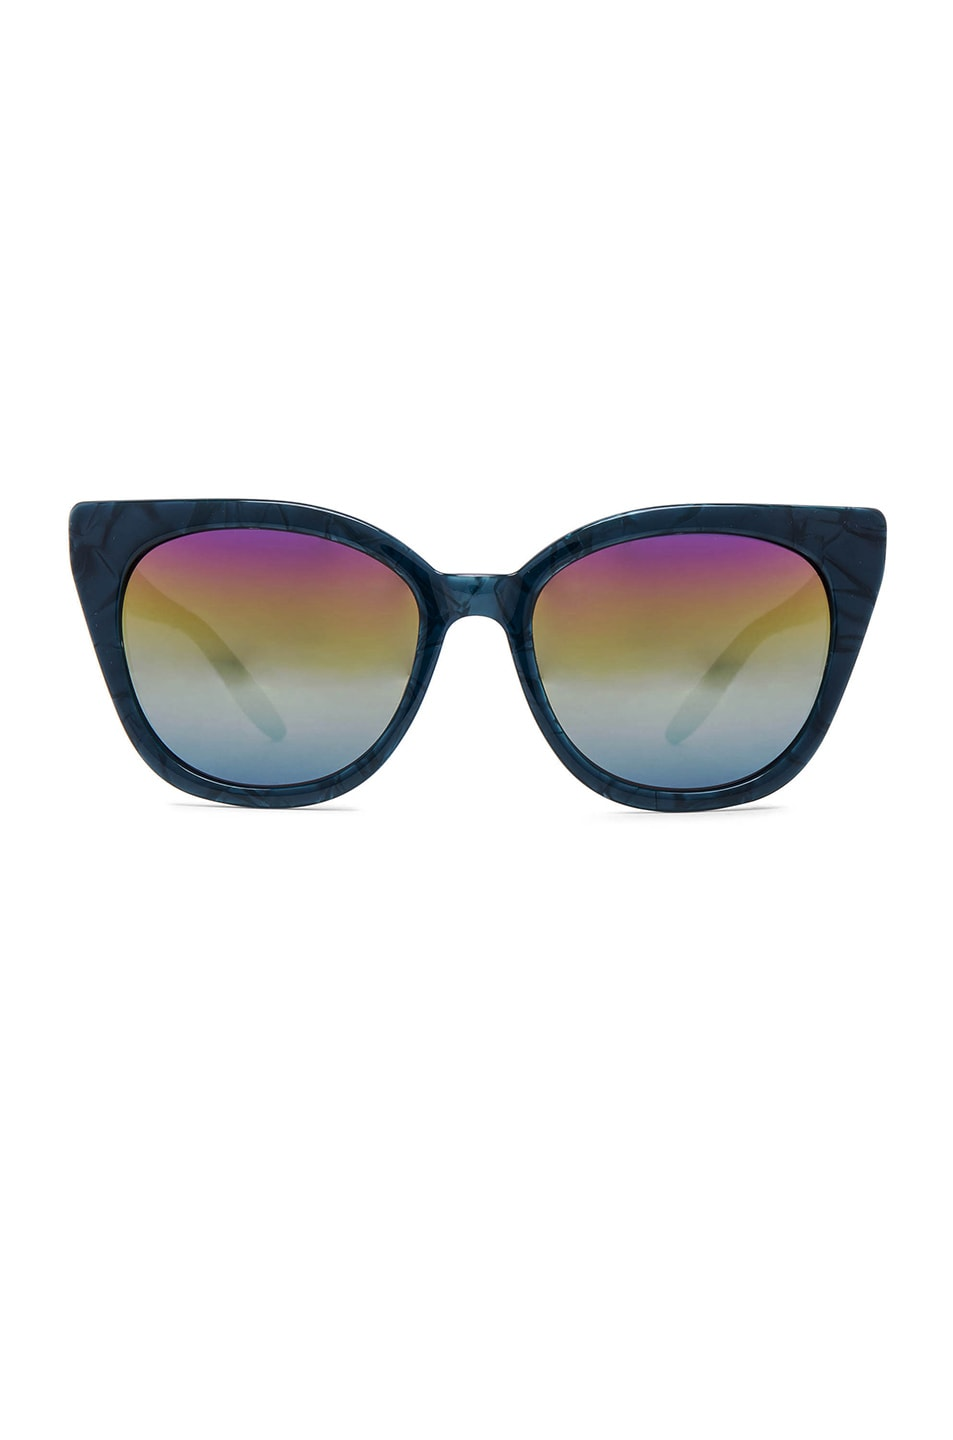 Image 1 of Barton Perreira for FWRD Shirelle Sunglasses in Blue Velvet